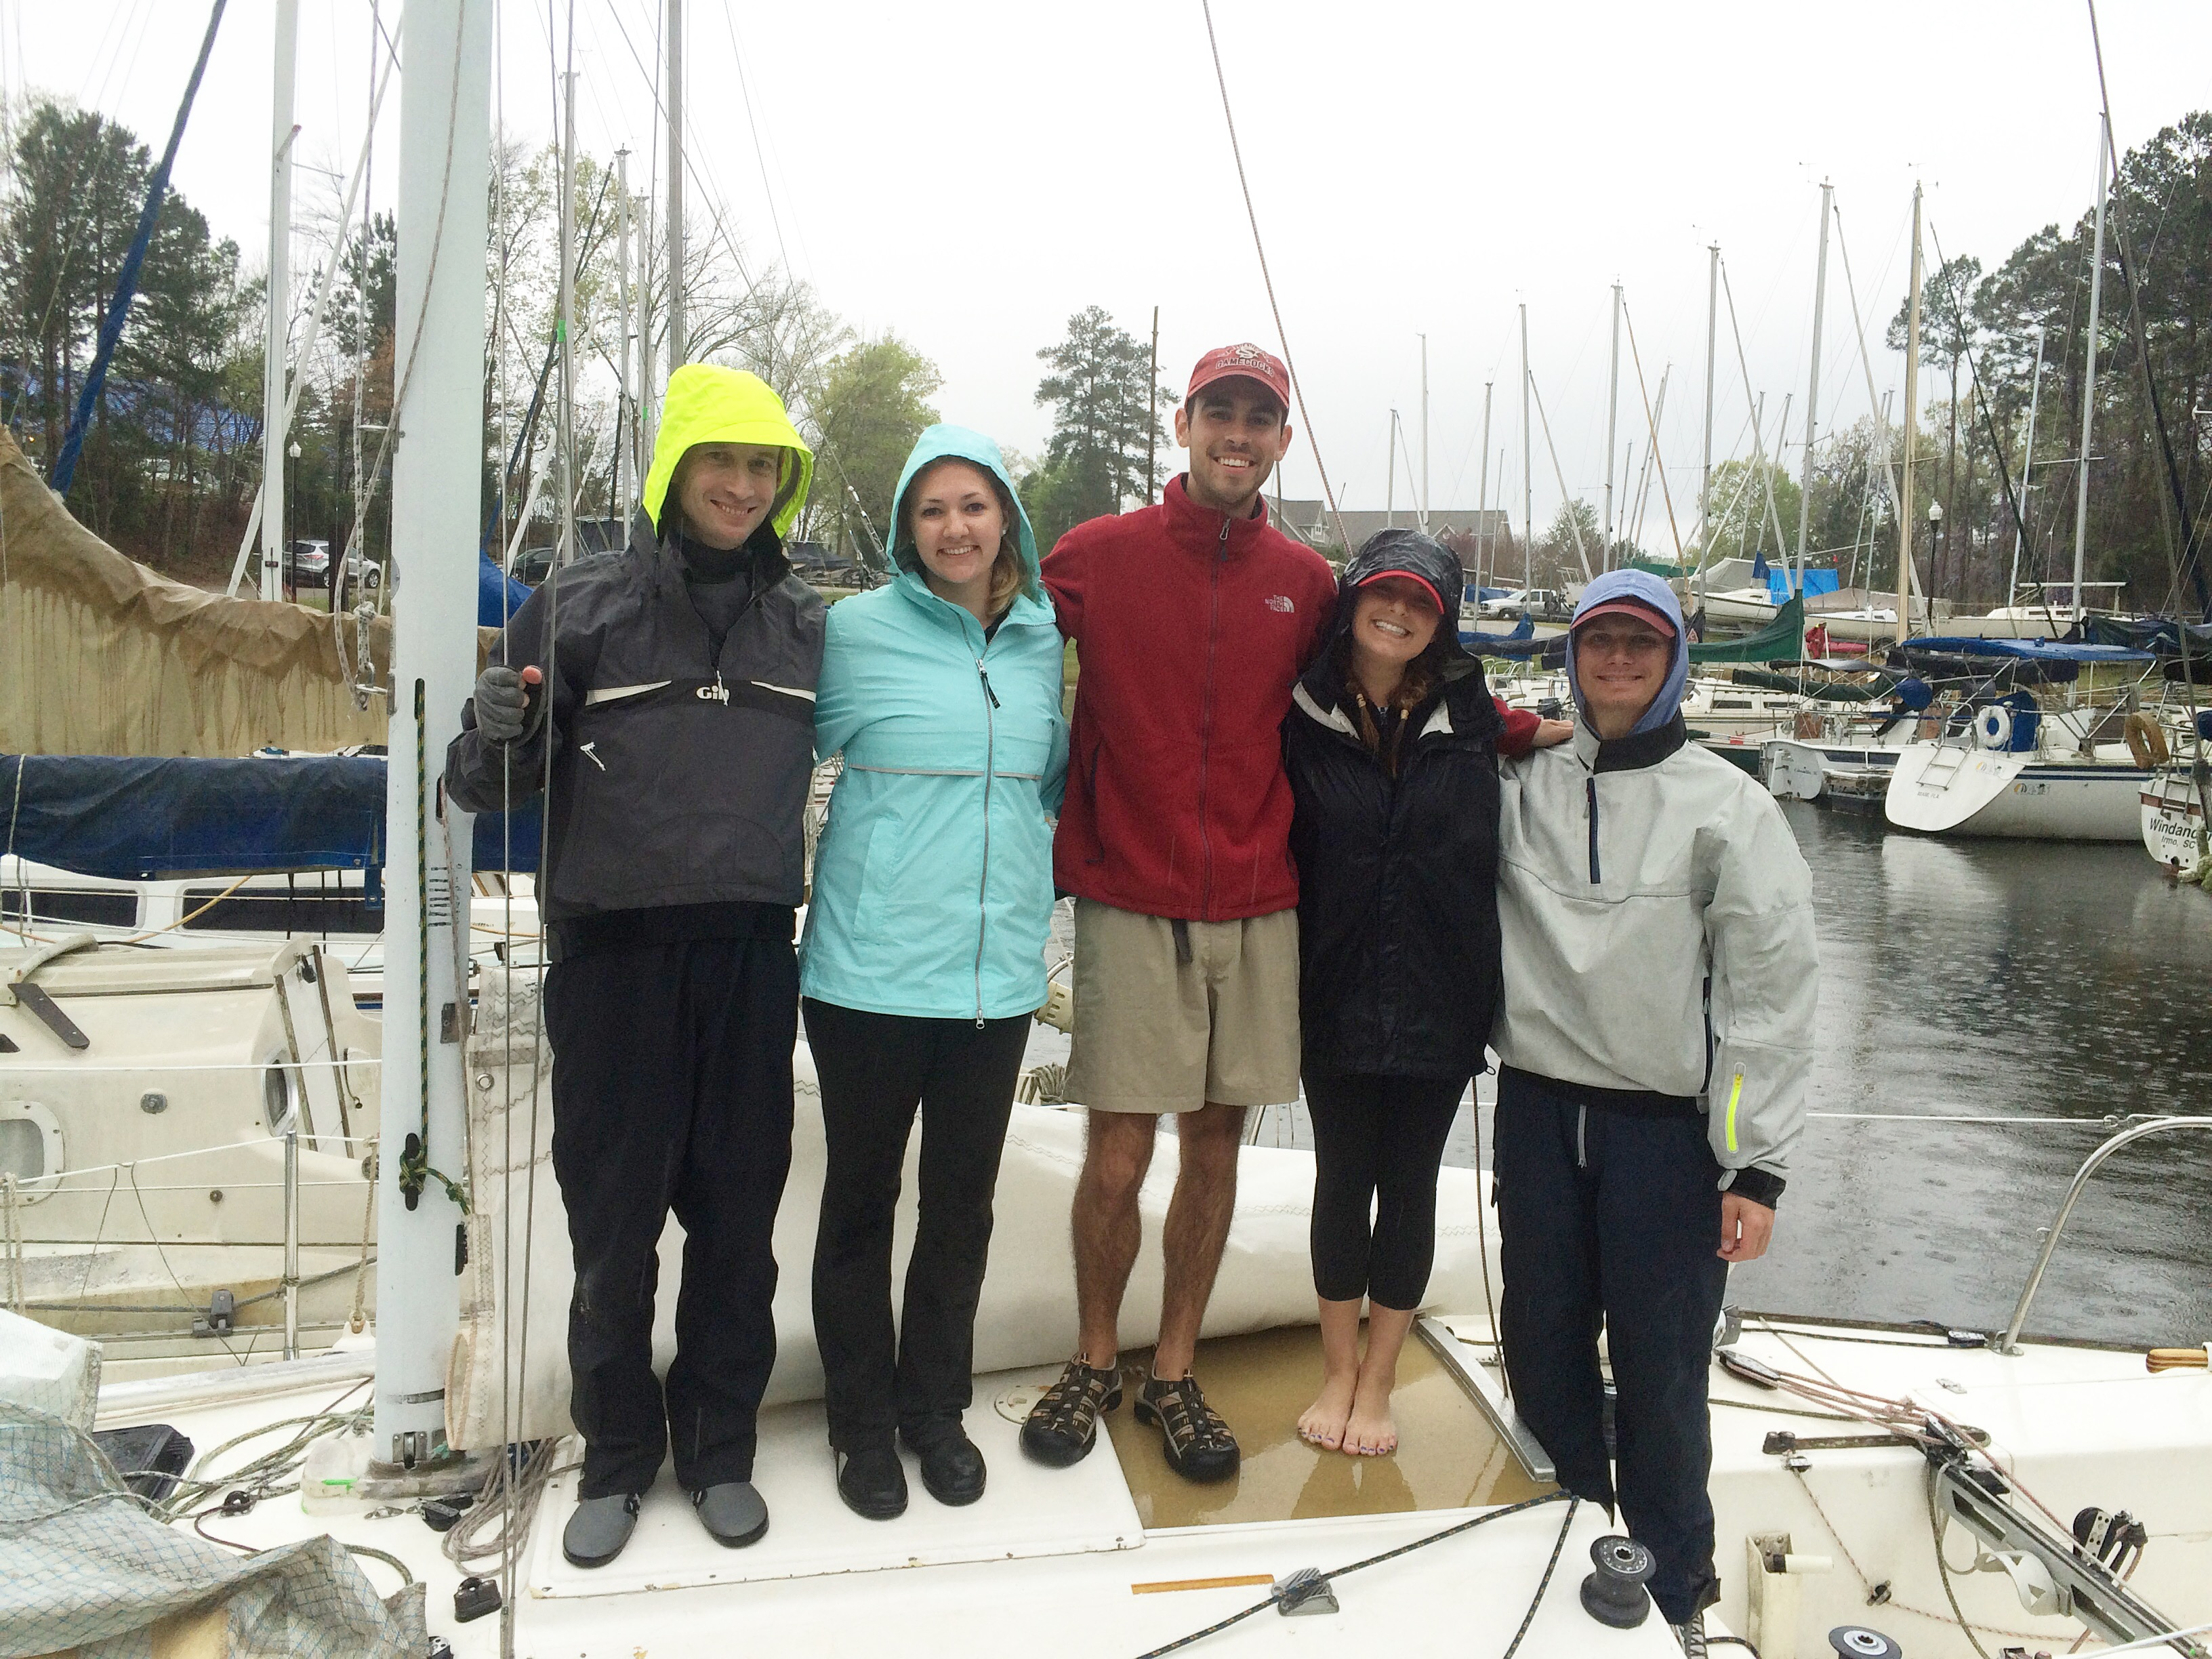 Winsome crew at Easter Regatta